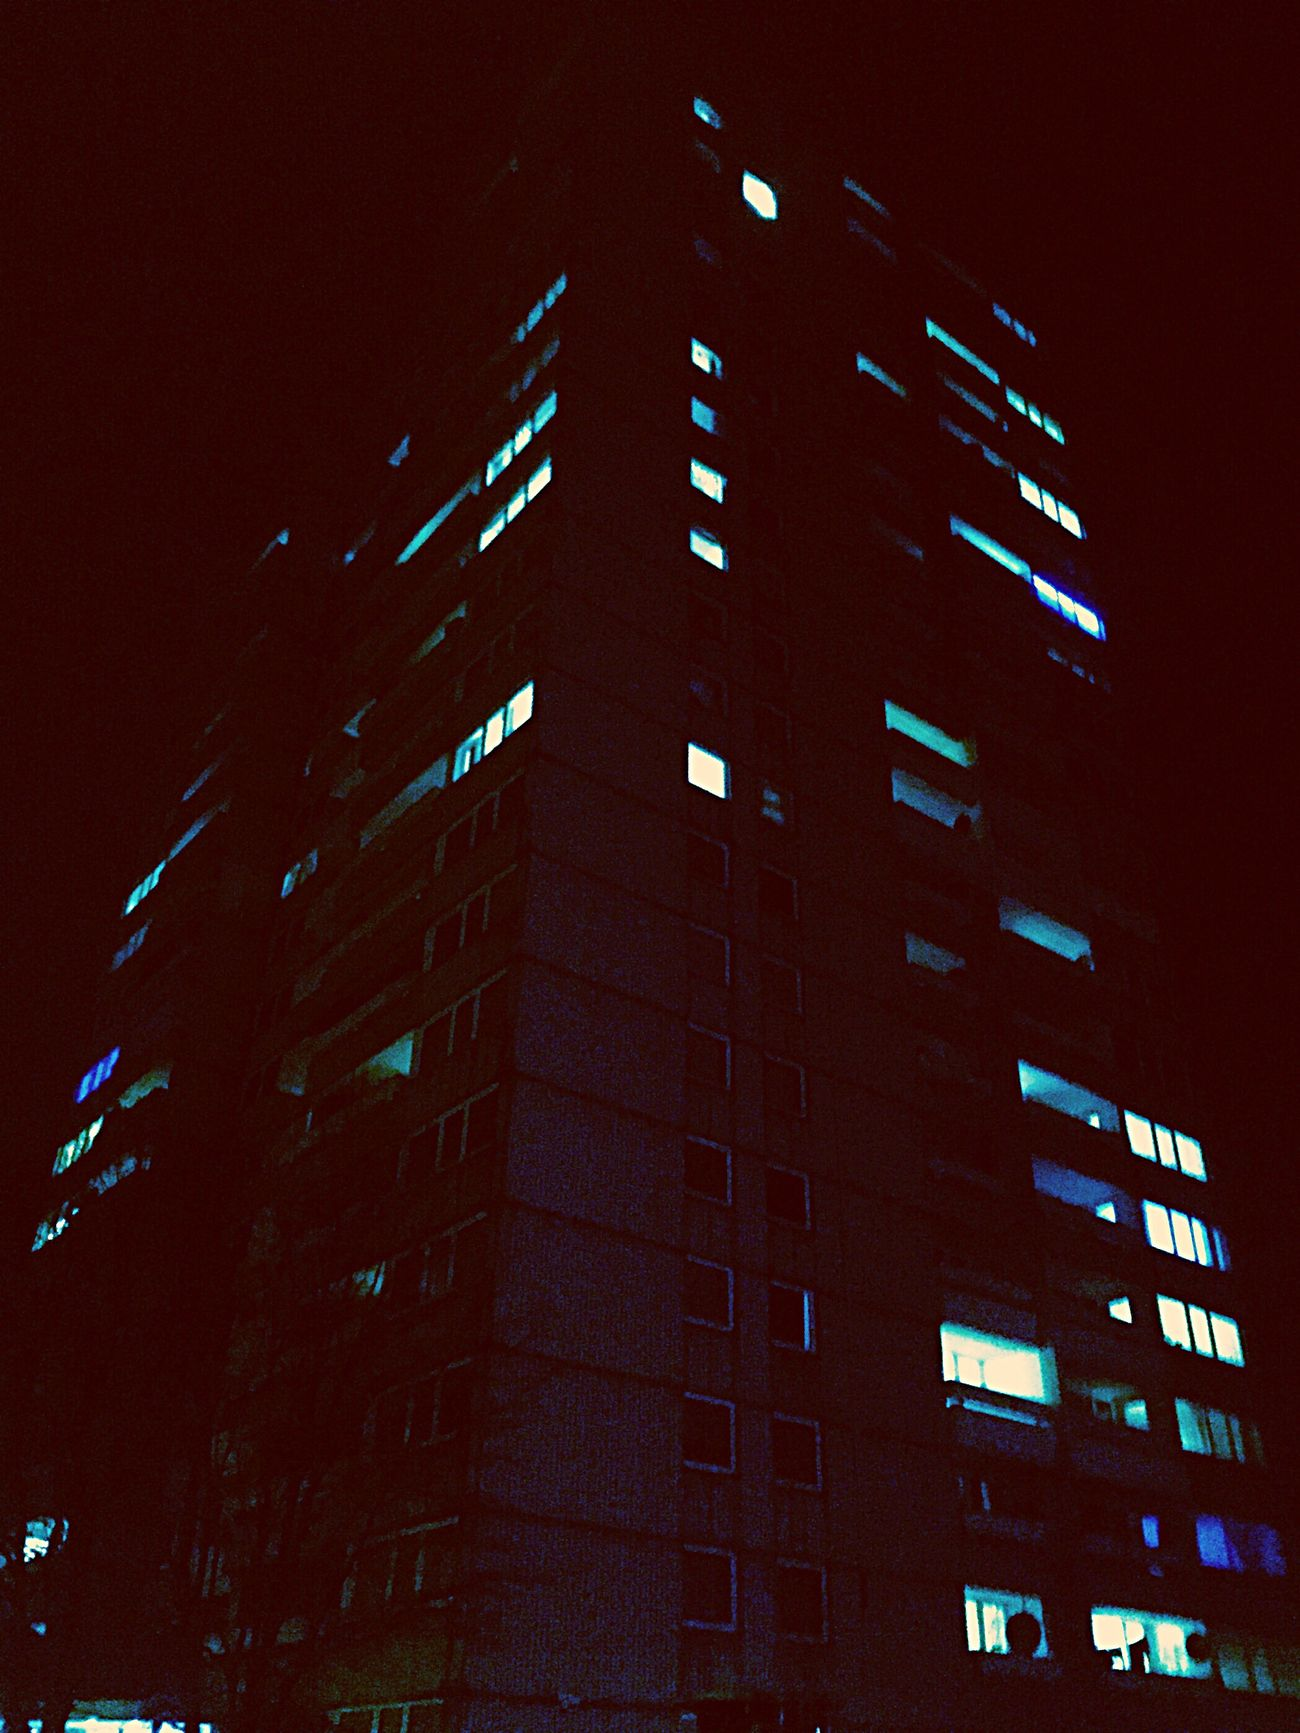 Building Exterior Architecture Built Structure City No People Low Angle View Outdoors Night Illuminated Modern Sky Skyscraper Plattenbau Hochhaus Flat Home Haus Germany Deutschland Mood Nacht Nachtfotografie Nightphotography Nightlife Dark